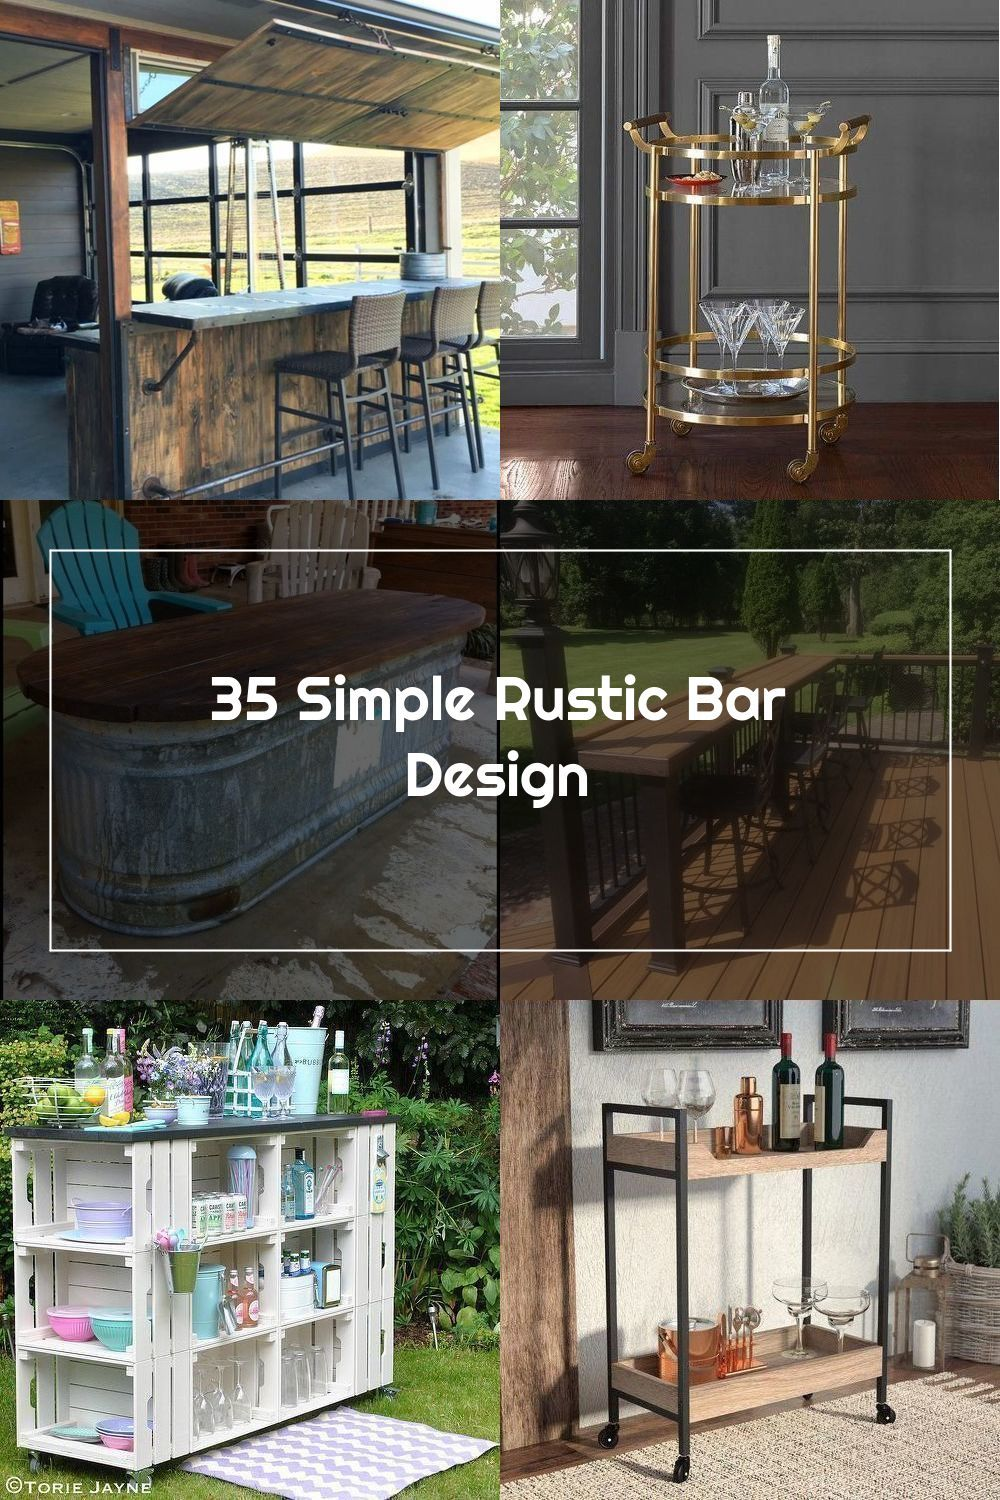 35 Simple Rustic Bar Design #homedecor #homedesignideas #homedecoraccessories